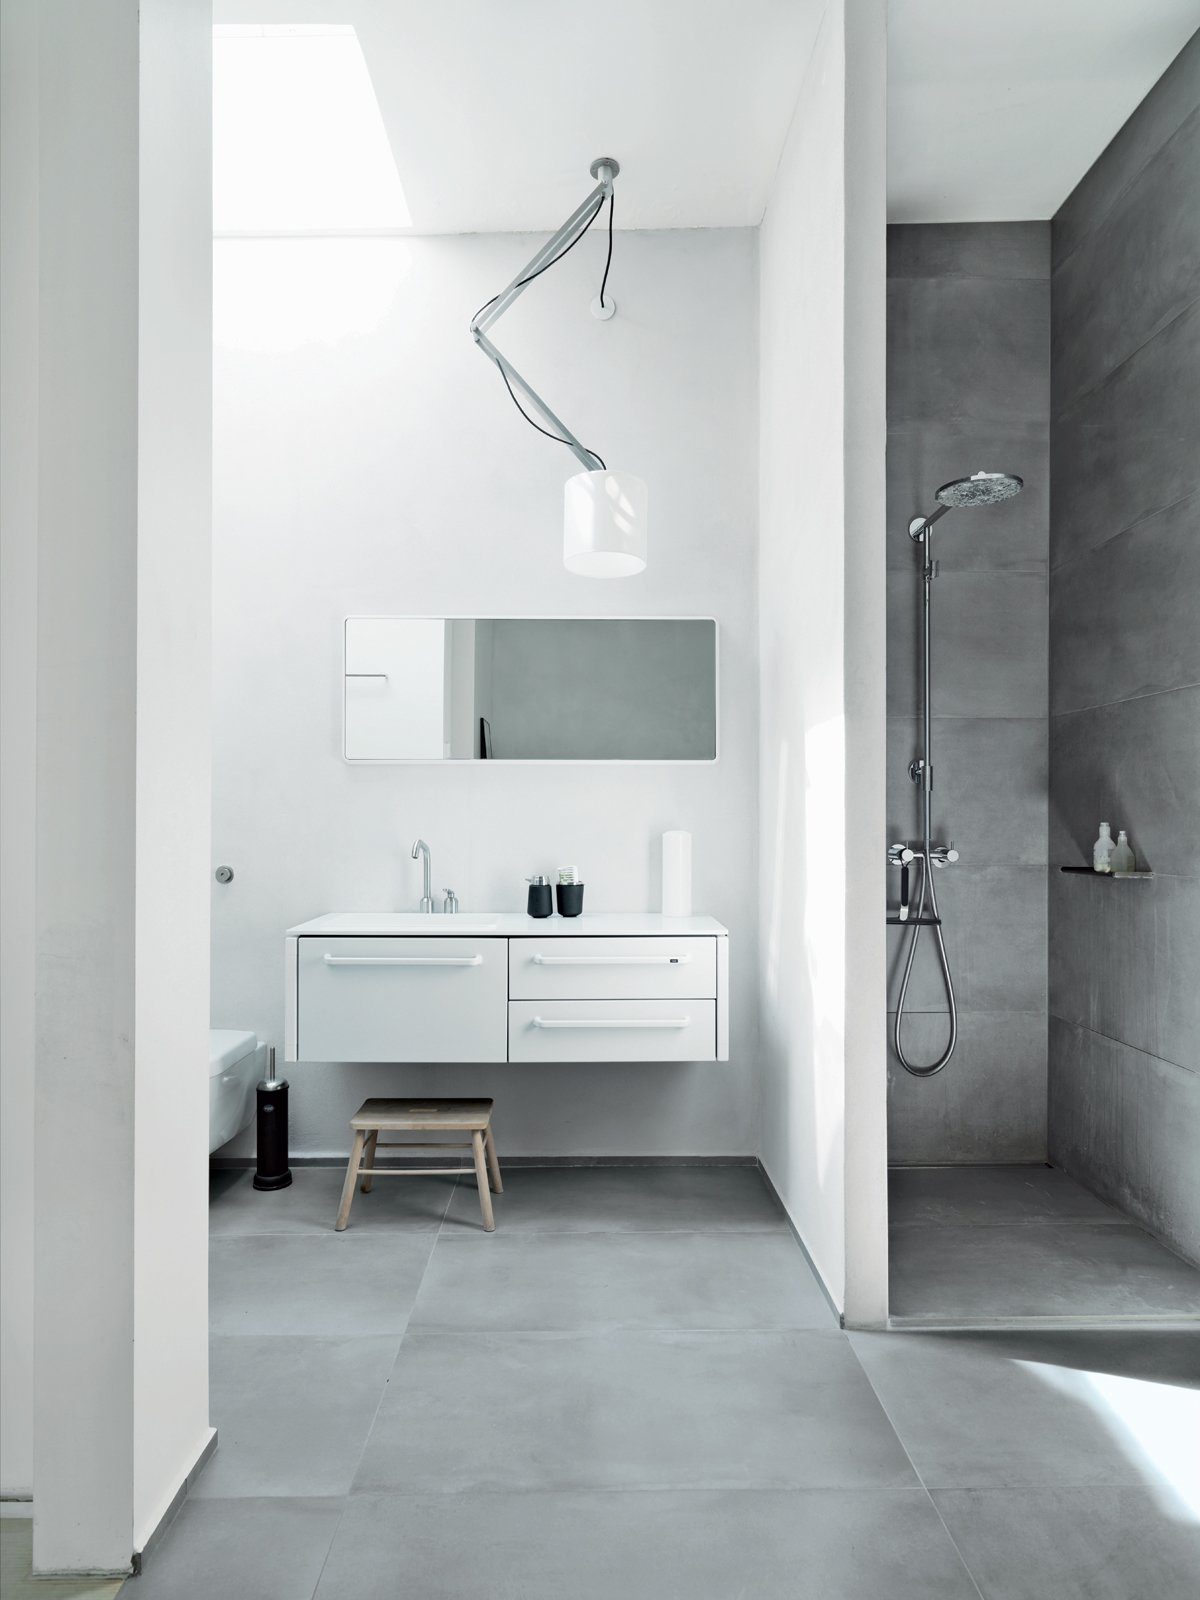 The family shares one main bathroom, which is outfitted with pieces from Vipp: 982 bath furniture, a 906 faucet, and a 992 mirror. The shower sports a Raindance connect showerhead by Hansgrohe, and there is a wall-mounted toilet by Villeroy & Boch. The Nomad light fixture is from Modular Lighting Instruments, and the floors are topped with ceramic tiles by LaFrenza.  Photo 8 of 8 in Two Designers Sharpen Up This Former Pencil Factory